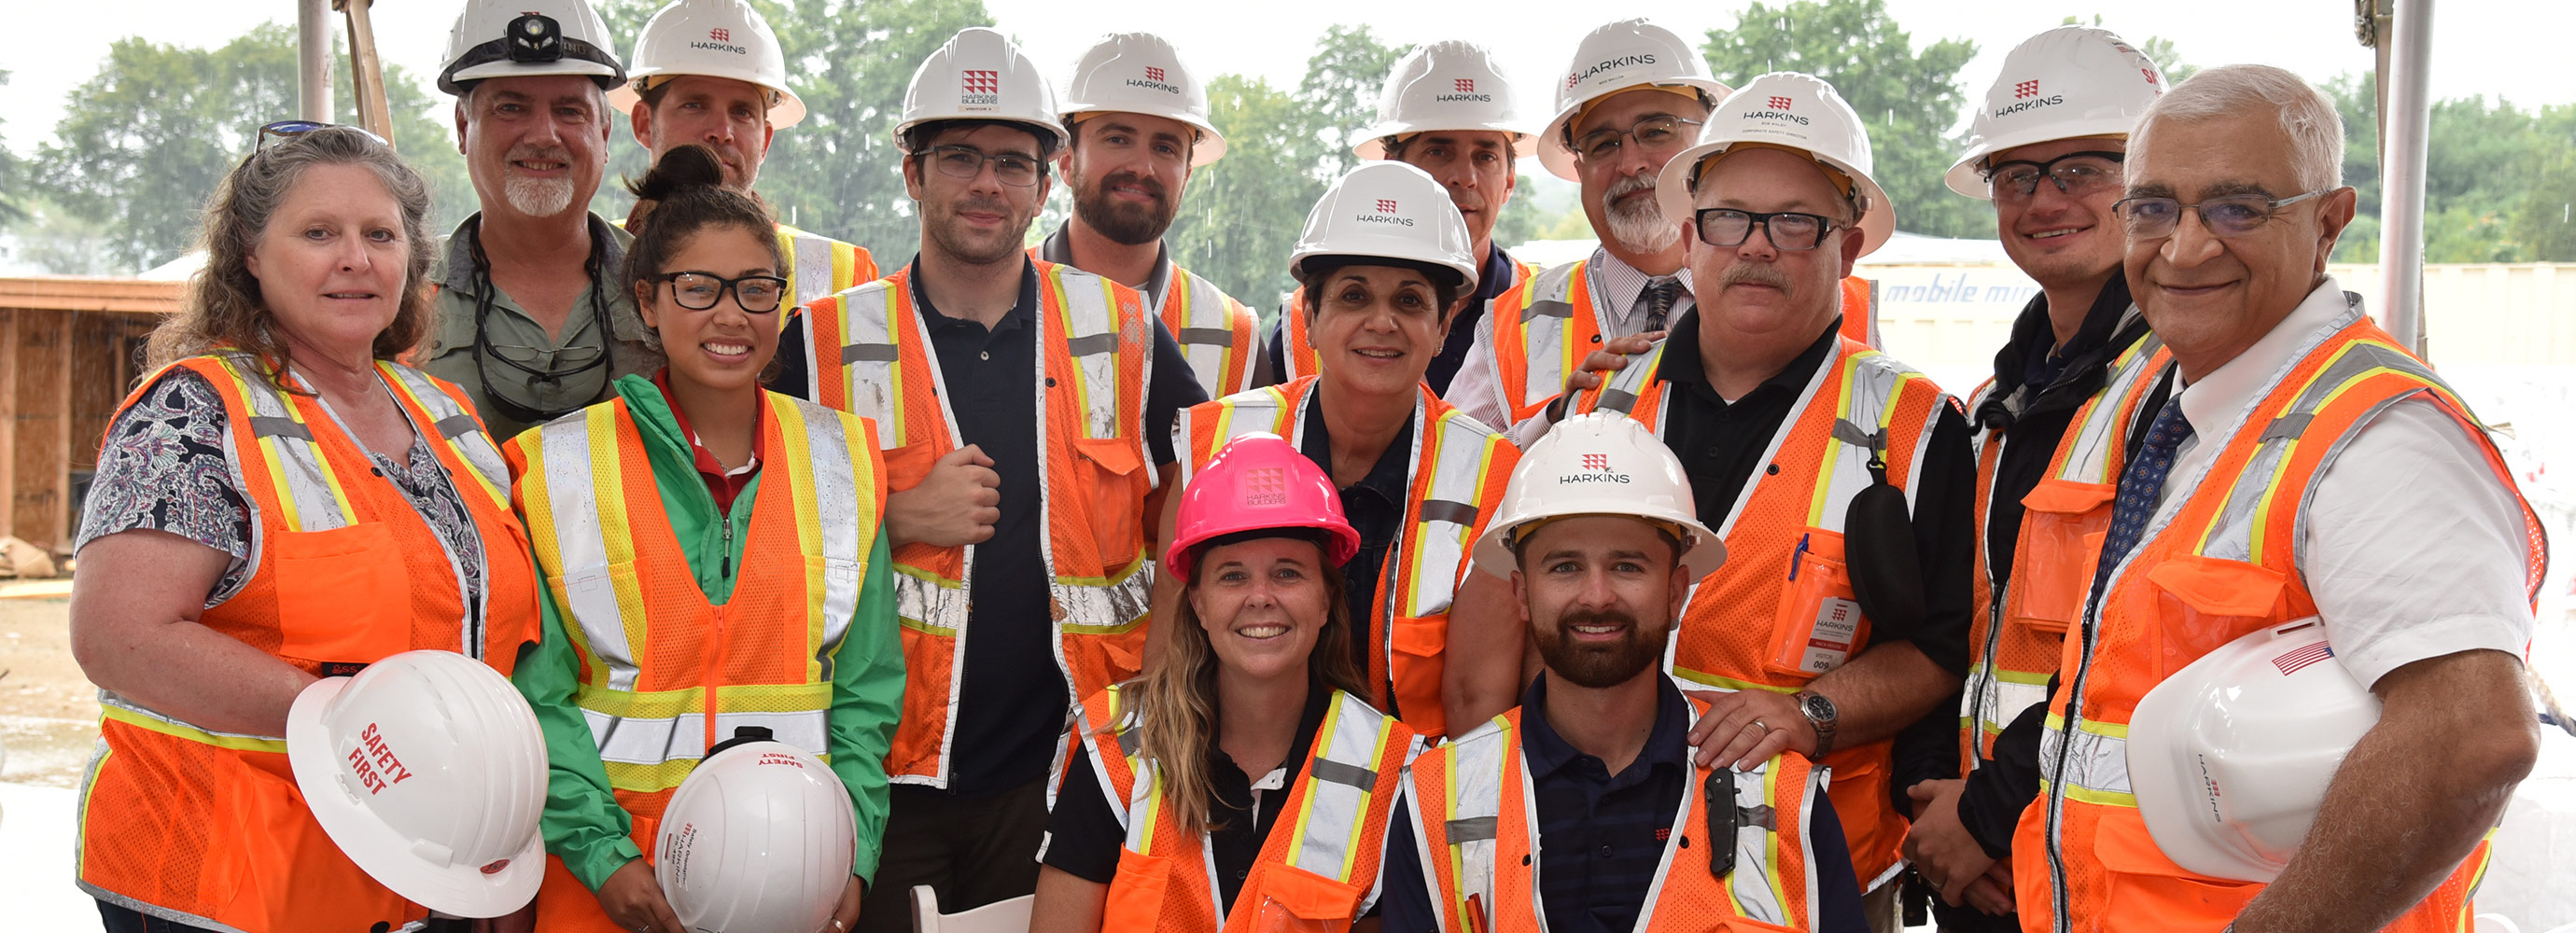 Construction Topping Out Group Harkins